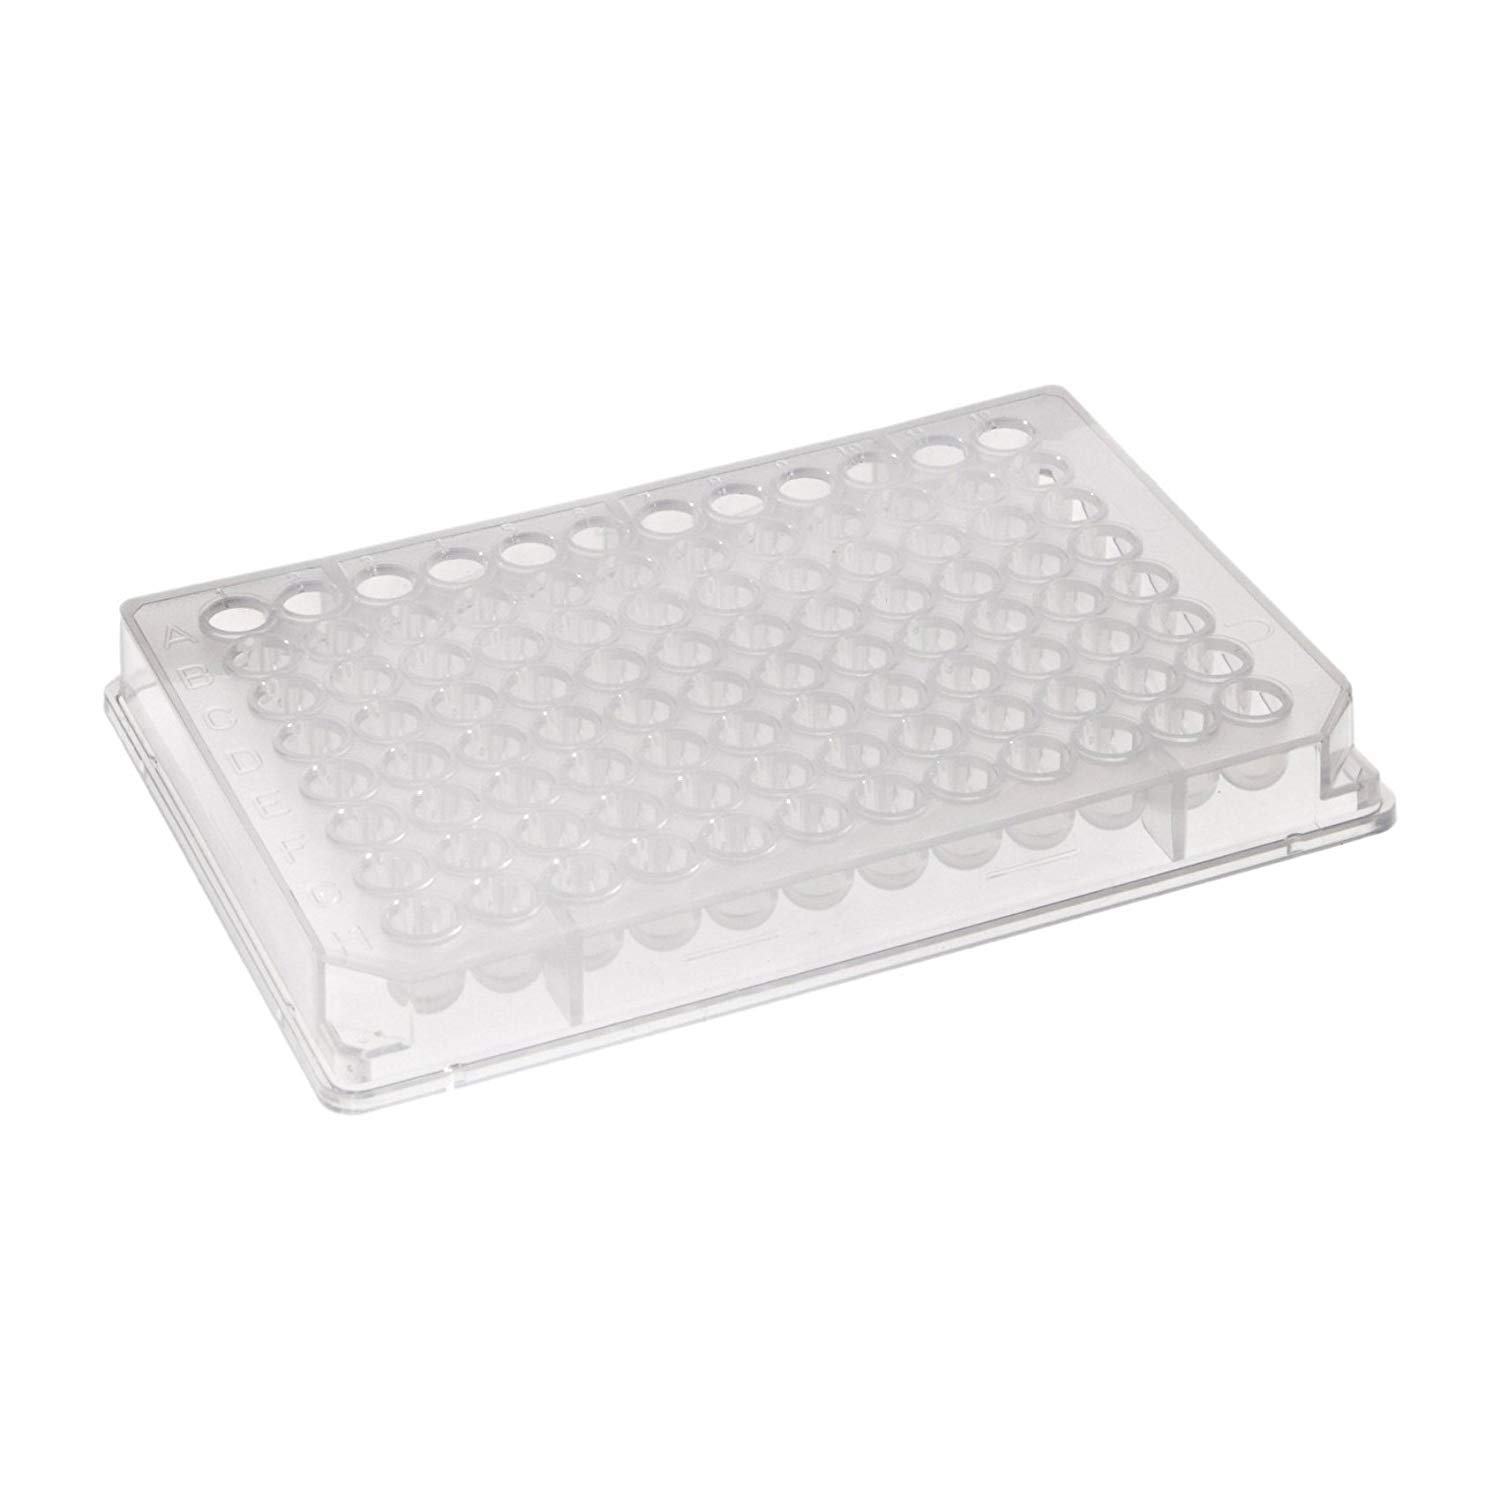 Iwaki 3590 Polystyrene Flat Bottom 96 Well High Bind EIA/RIA Clear Microplate, Without Lid (Case of 99)